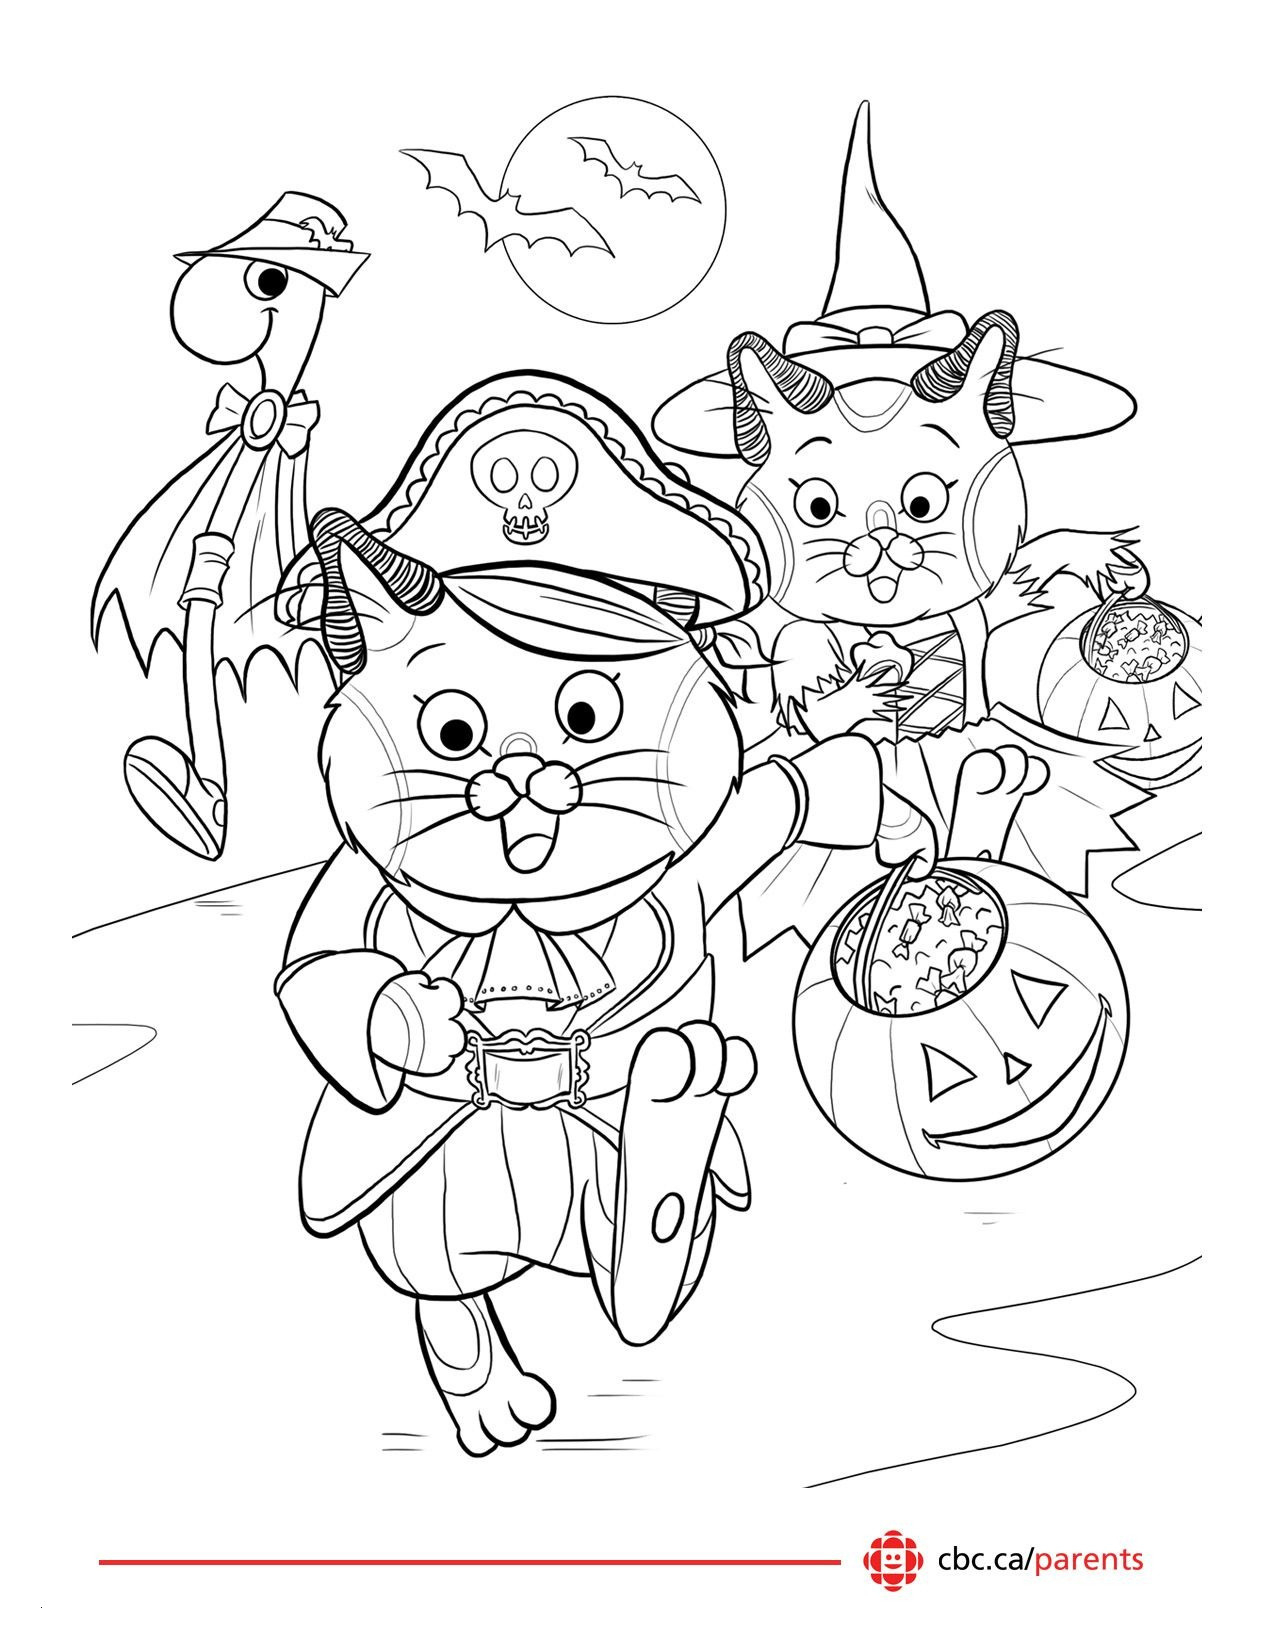 coloring pages 101 Download-Printable Coloring Pages Girls 30 Luxury Coloring Pages 101 Cloud9vegas 2-n